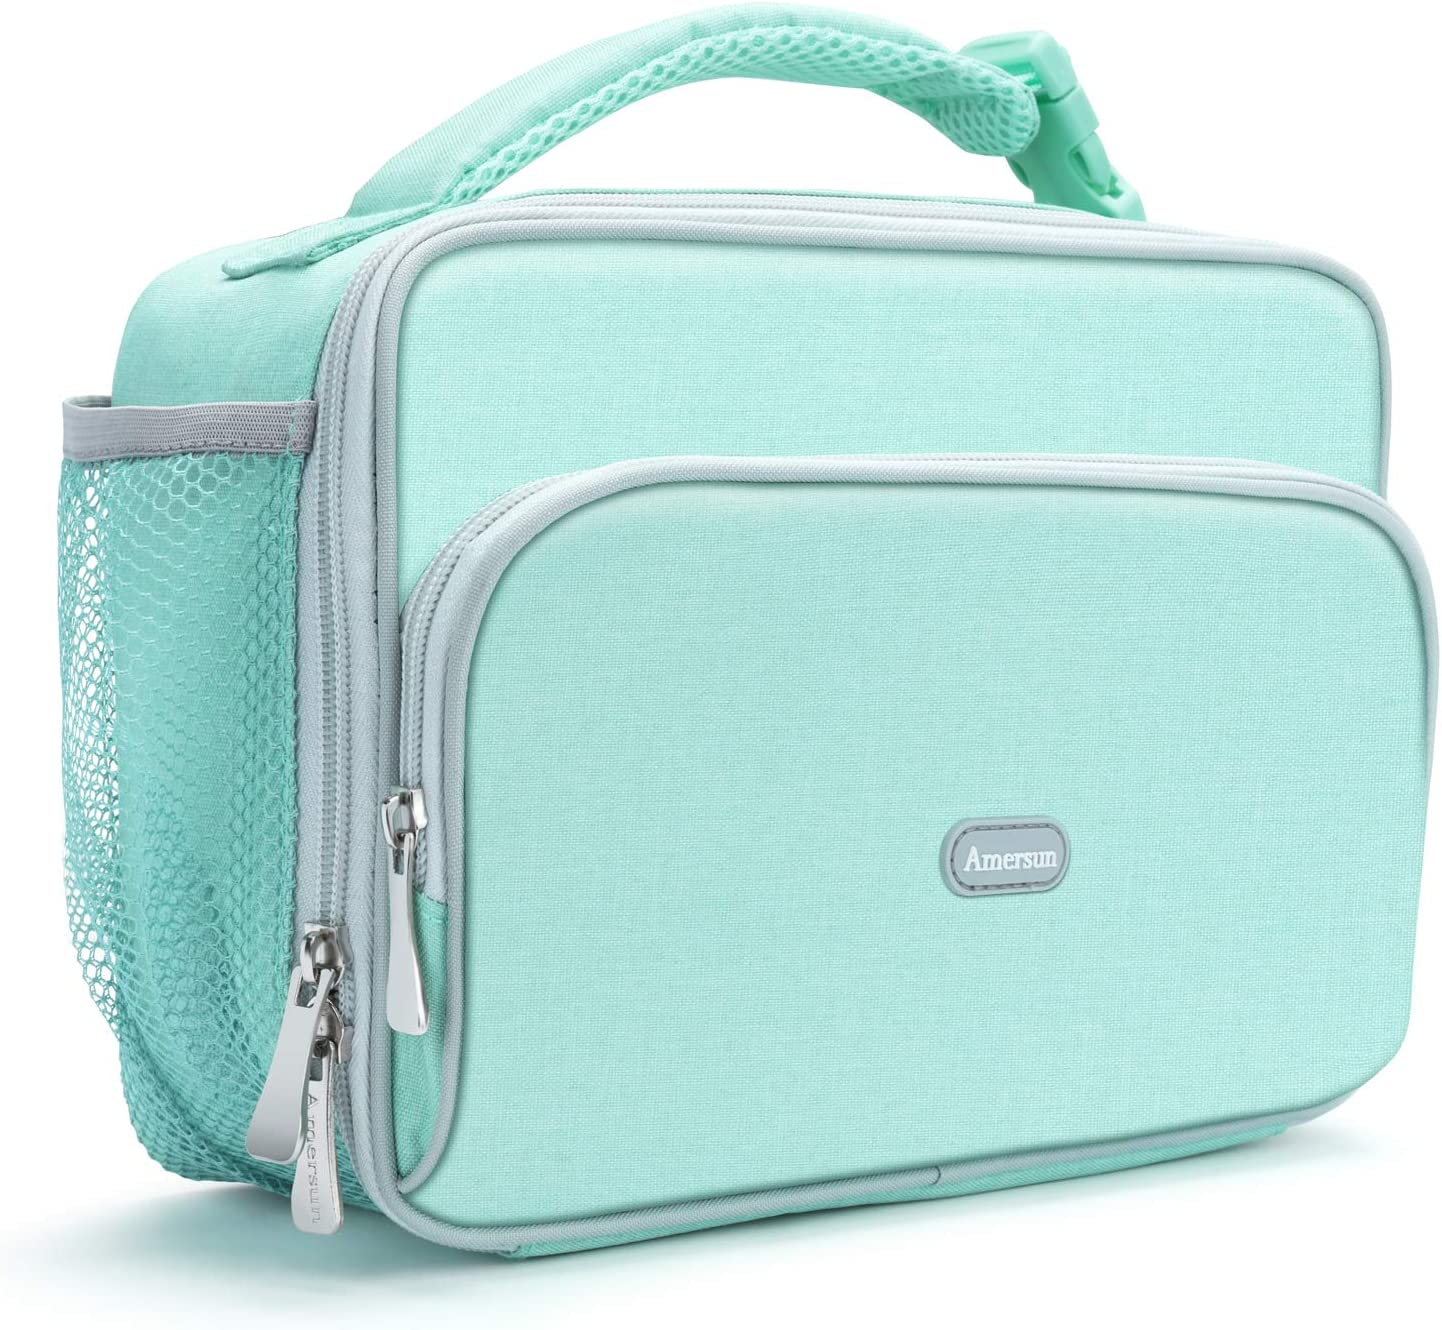 Amersun Lunch Box for Women,Sturdy Insulated Lunch Bag with Padded Liner Keep Food Warm Cold for Long Time,Water-resistant Thermal Lunch Cooler for Girls Adult Travel Picnic Work(2 Pockets,Light Blue)